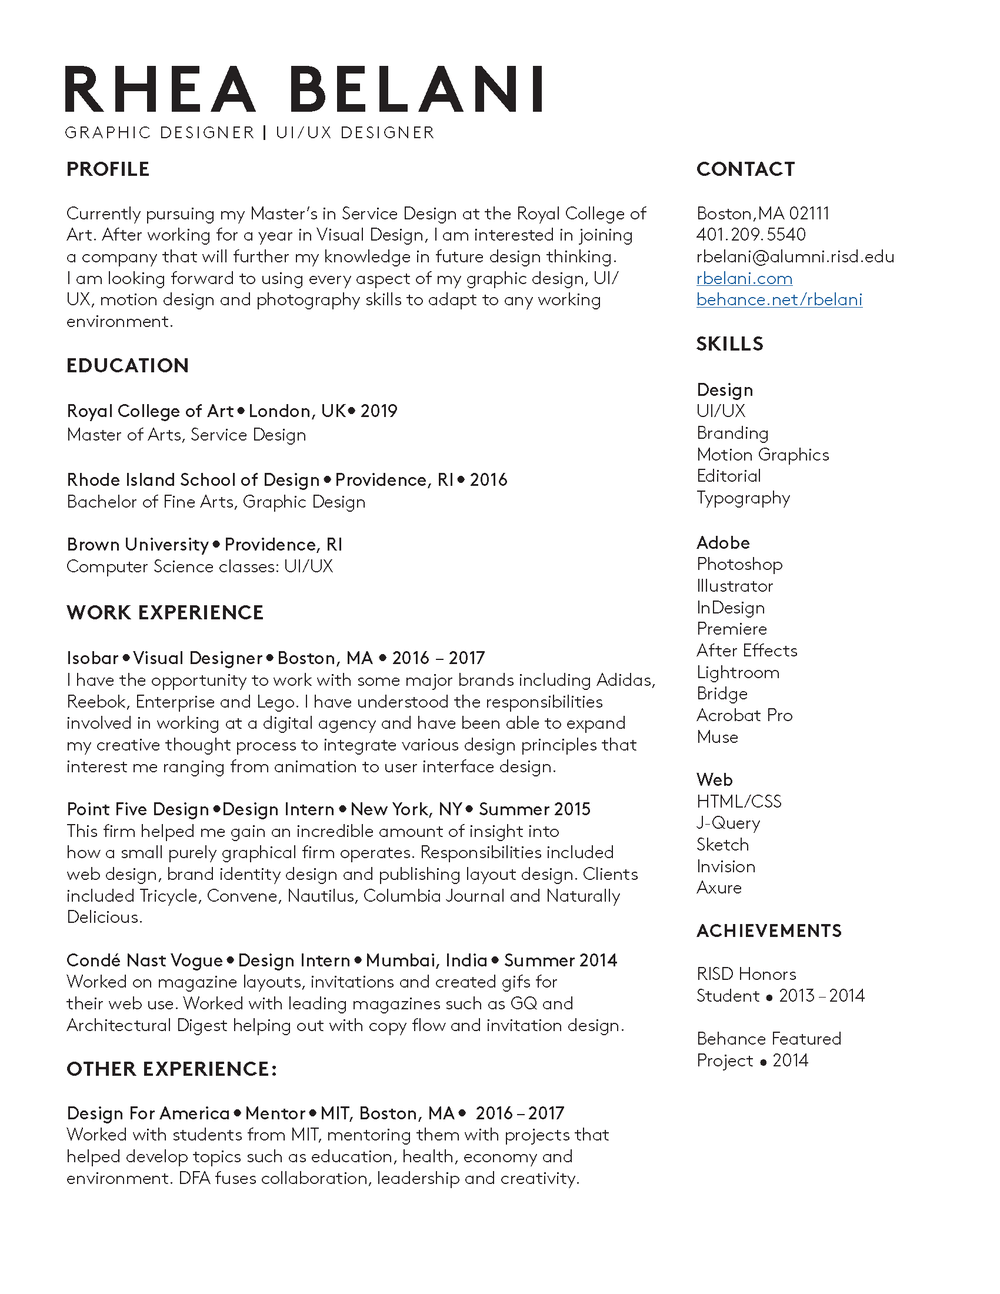 motion graphics resume